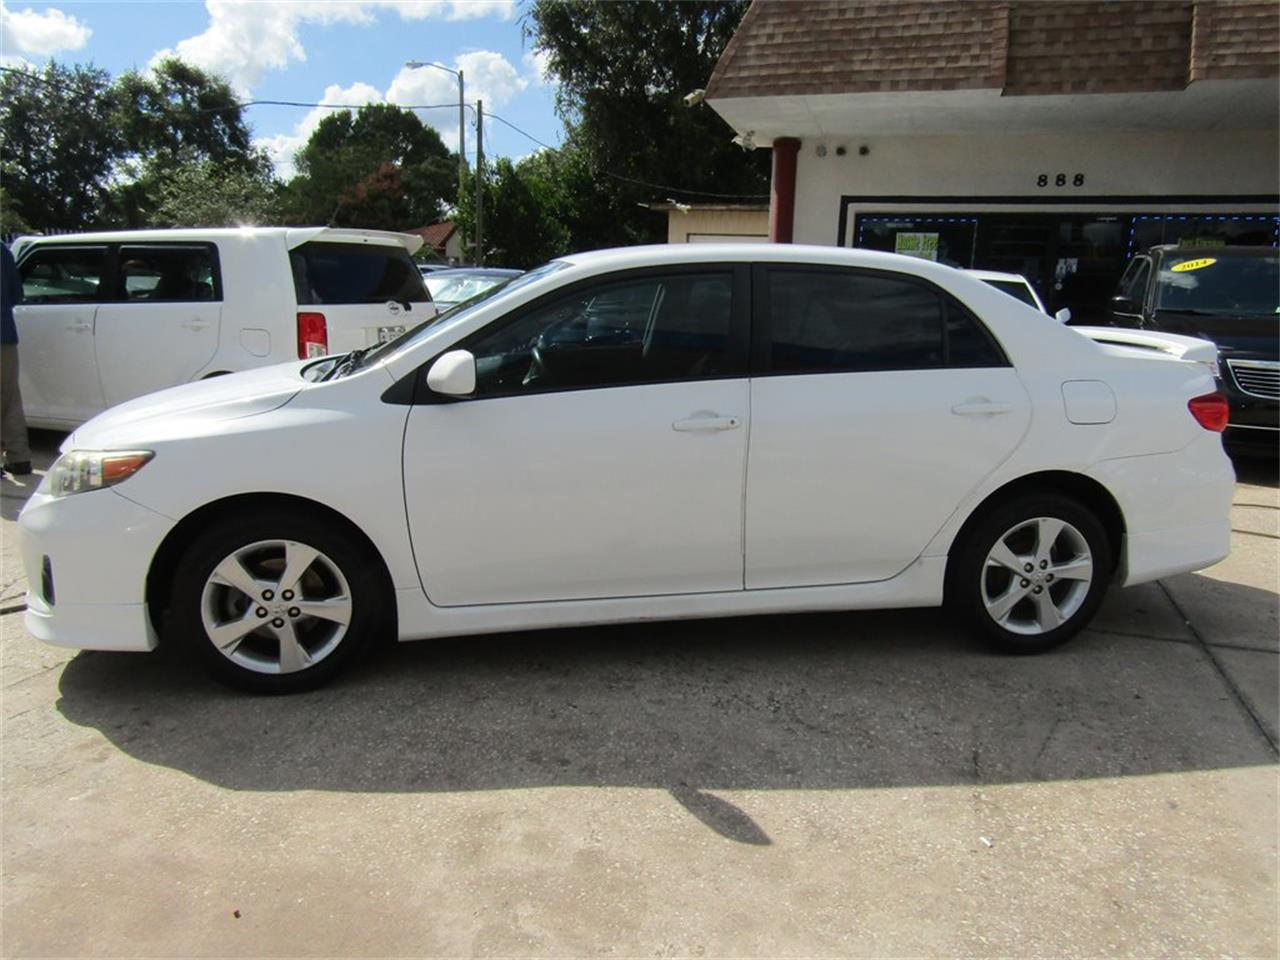 2011 Toyota Corolla (CC-1296447) for sale in Orlando, Florida